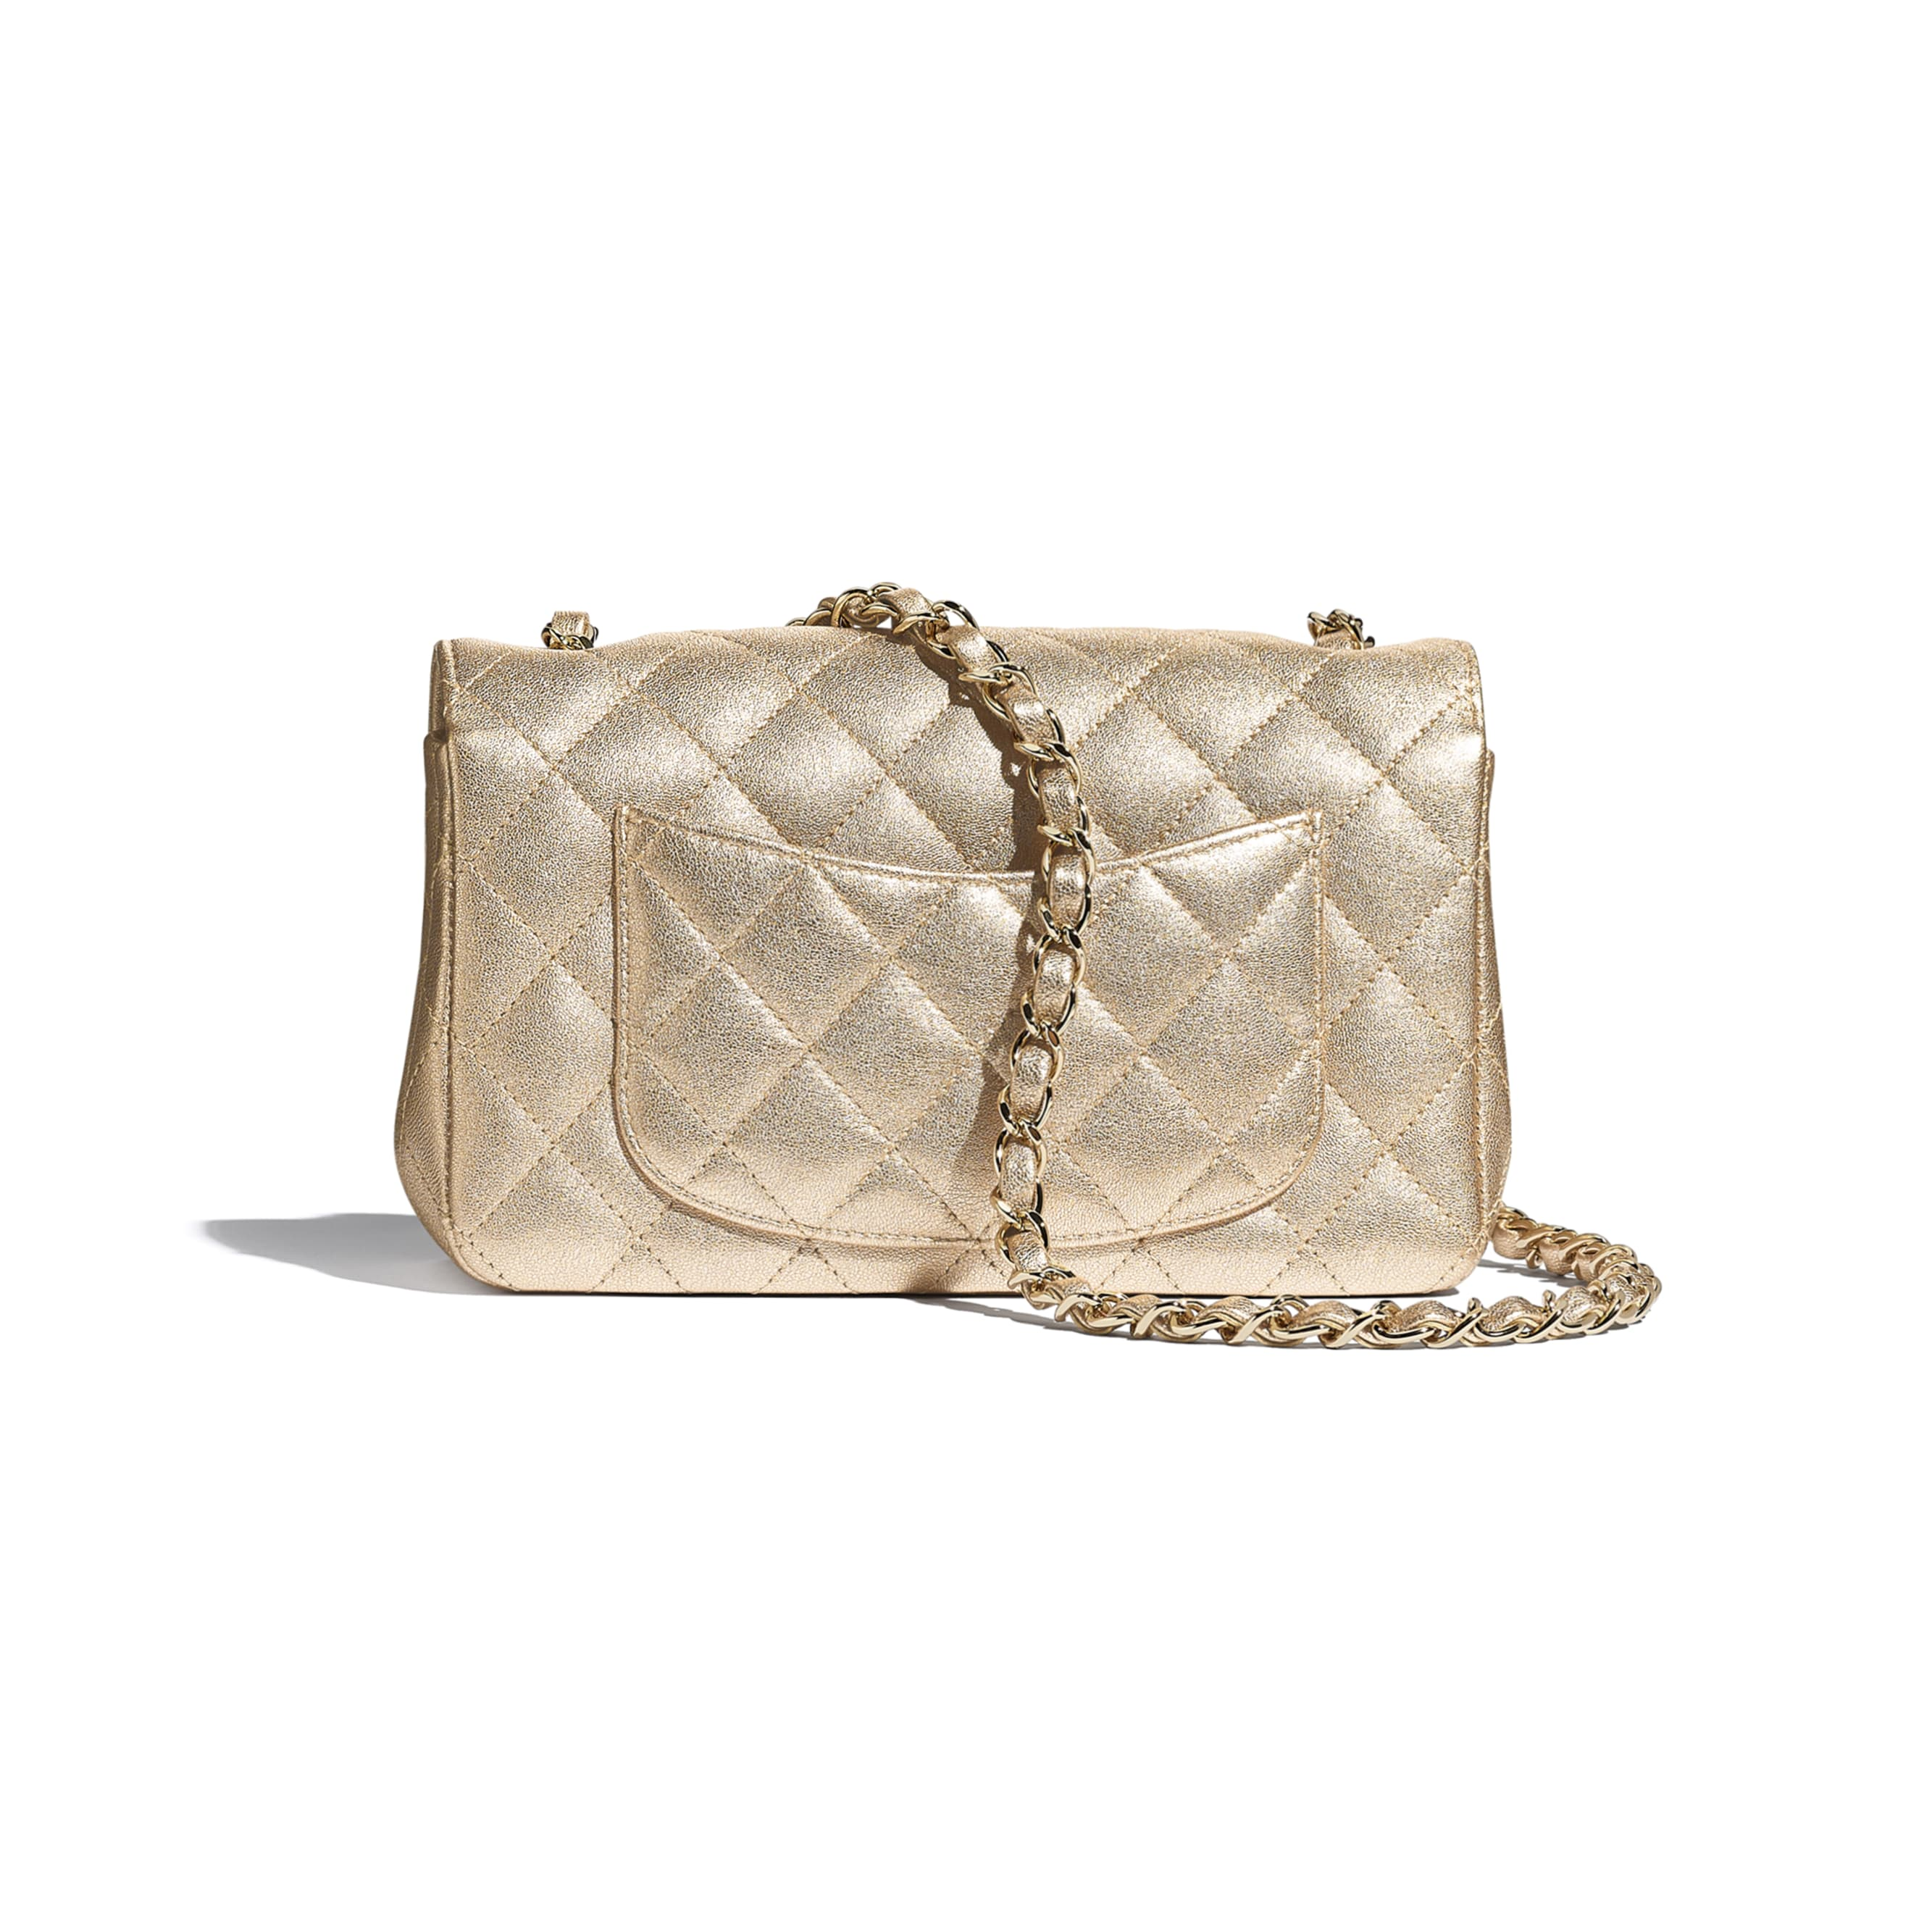 Mini Flap Bag - Gold - Metallic Lambskin & Gold Metal - CHANEL - Alternative view - see standard sized version